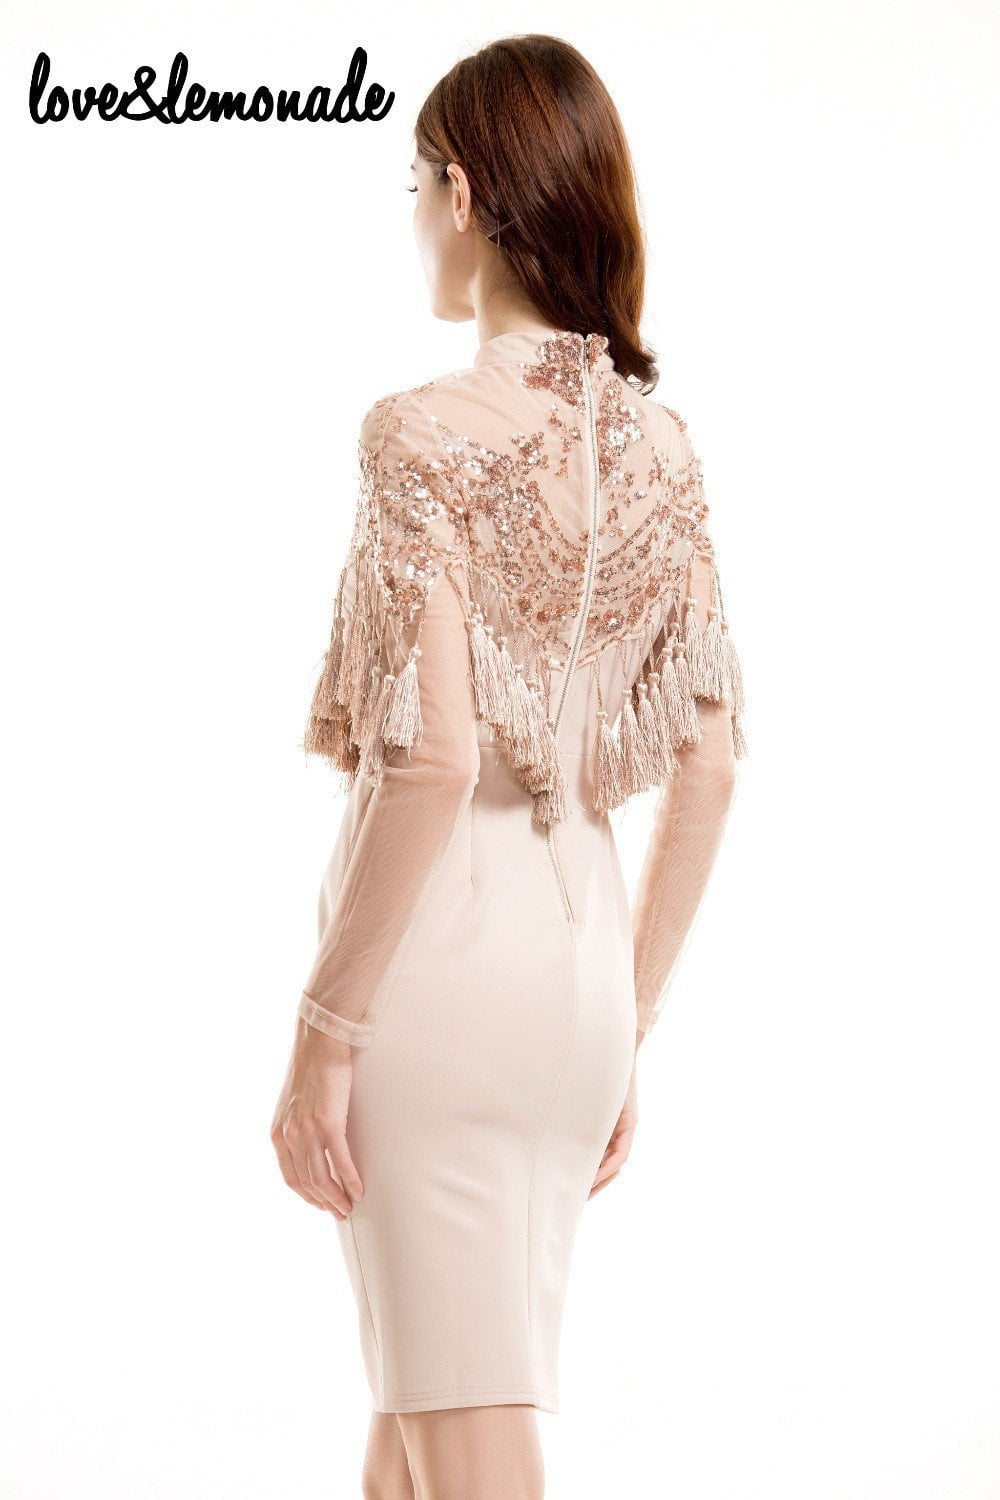 Lace Sequined Tassels Party Dress Nude-Dress-SheSimplyShops